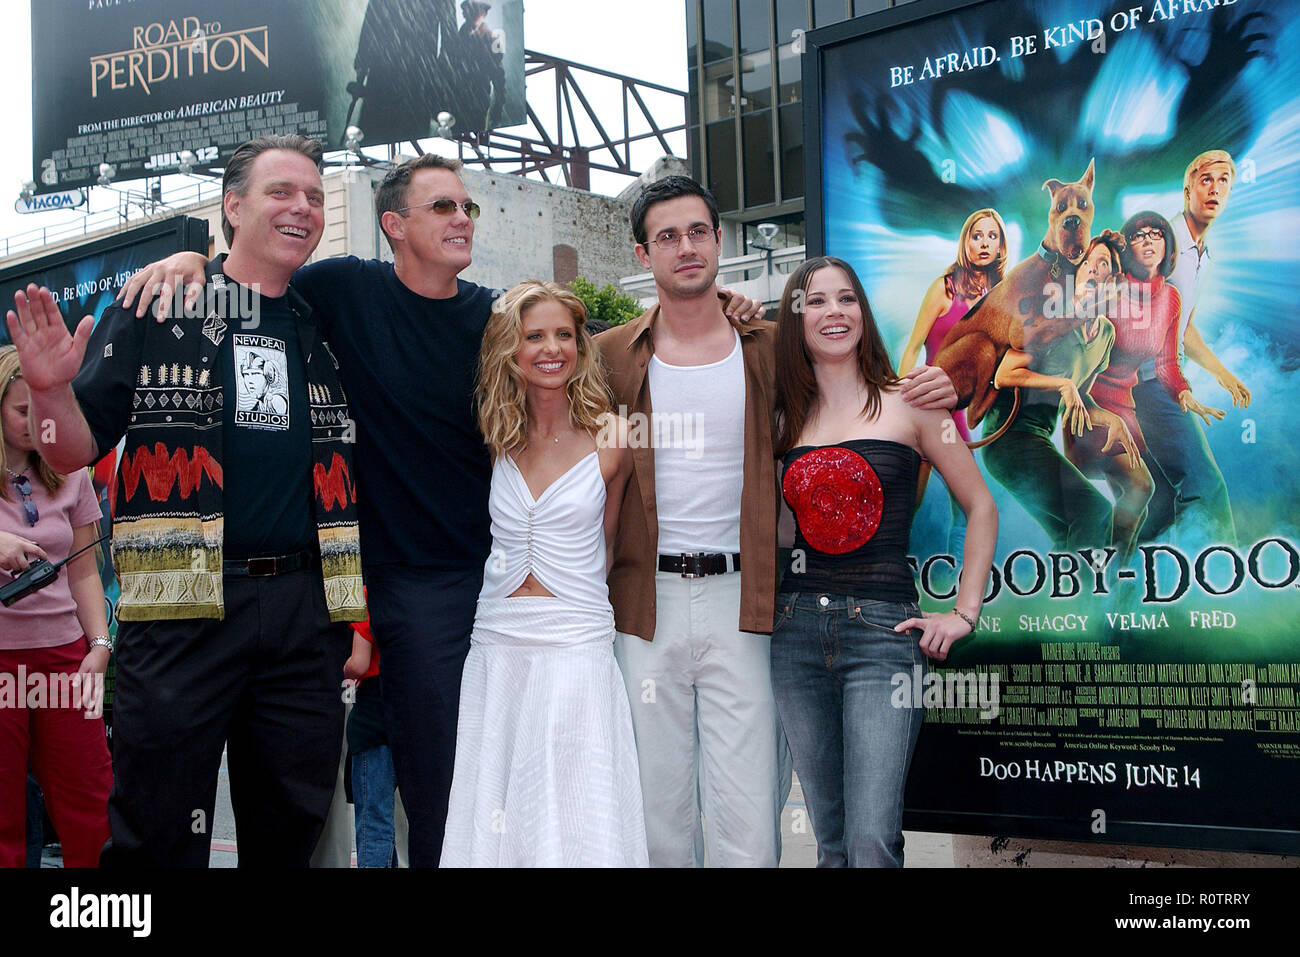 The Cast Of Scooby Doo Matthew Lillard Sarah Michelle Gellar Freddie Prinze Jr And Linda Cardellini Pose With Director Left Raja Gosnell At The P Stock Photo Alamy